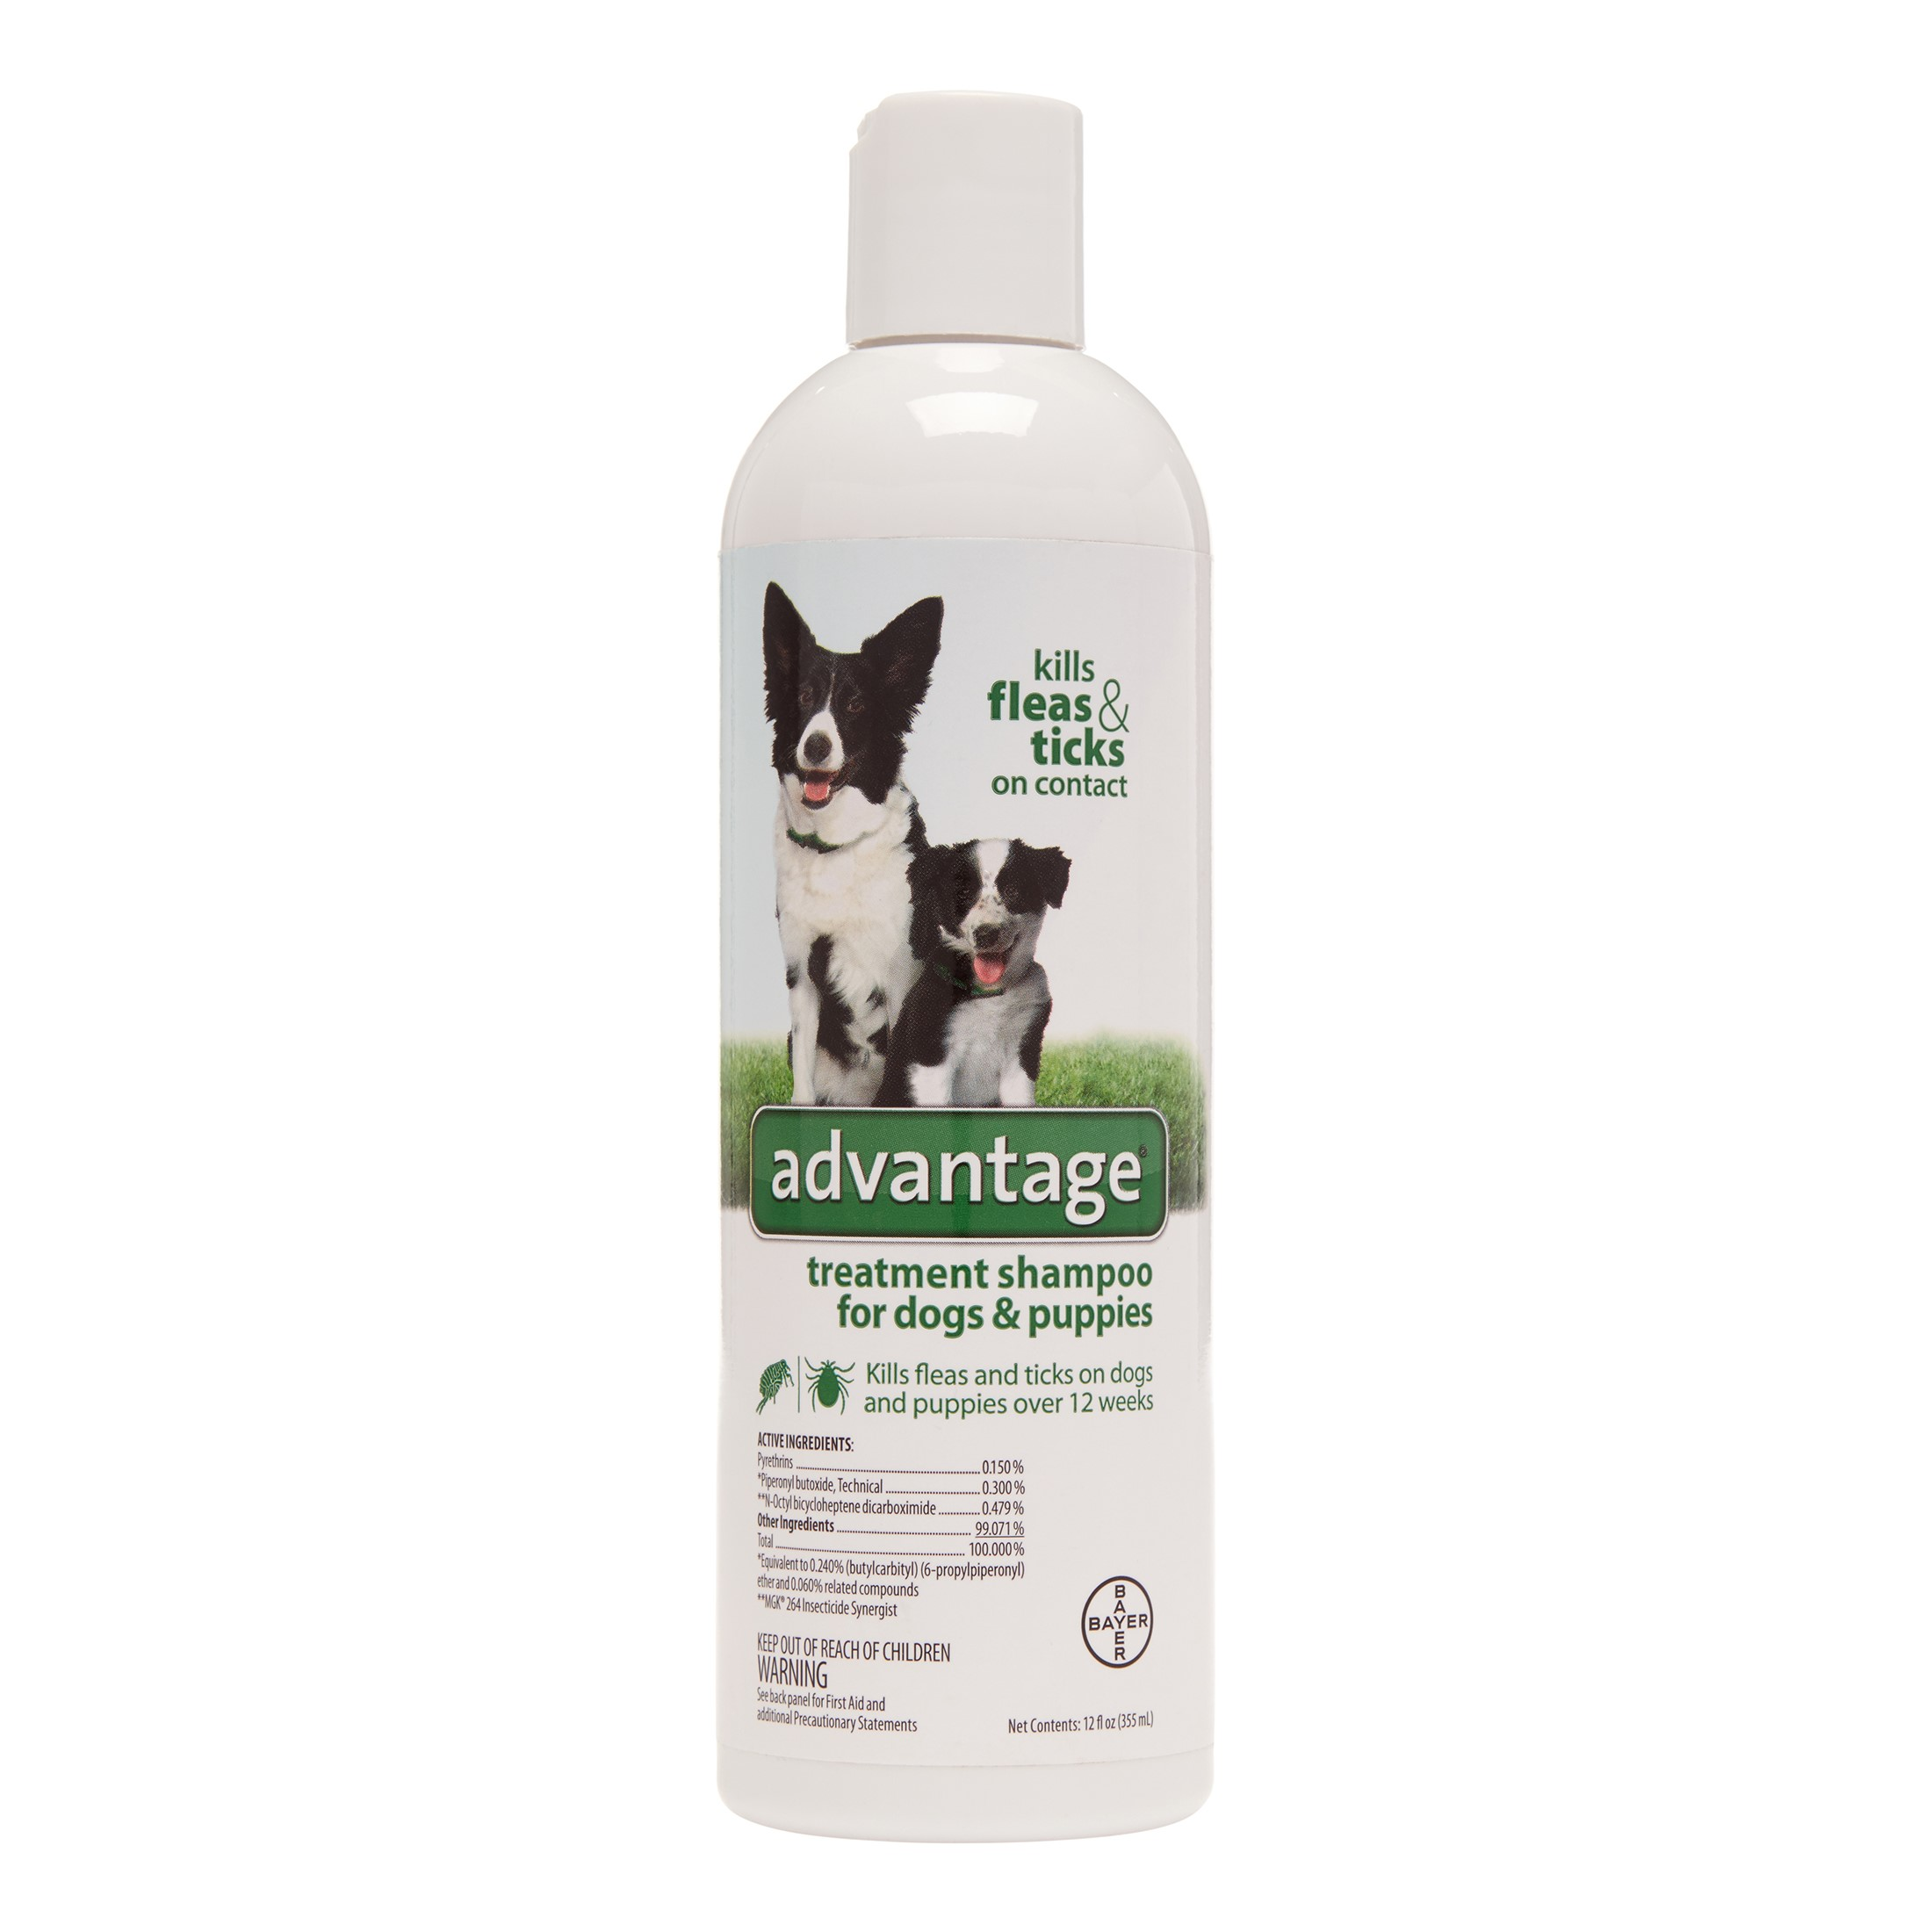 Image of Advantage Flea & Tick Treatment Shampoo, 12 Oz